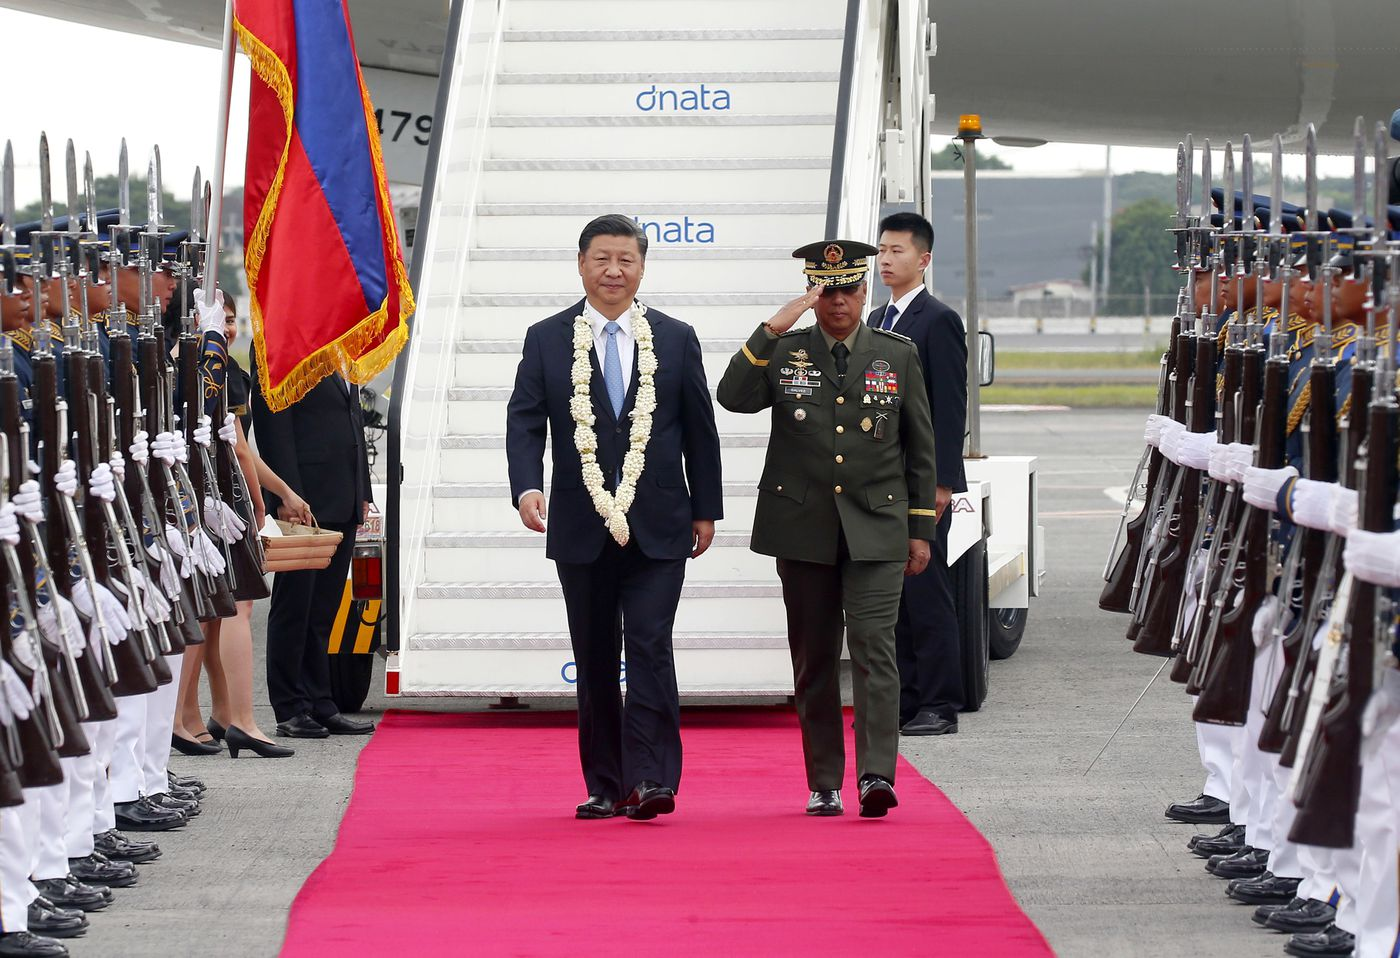 Chinese President Xi Jinping, center left, walks past an honor guard upon arrival at the Ninoy Aquino International Airport in suburban Pasay city, southeast of Manila, Philippines, Tuesday, Nov. 20, 2018. Xi visited the Philippines for the first time to deepen ties with America's ally. Image: AP Photo/Bullit Marquez